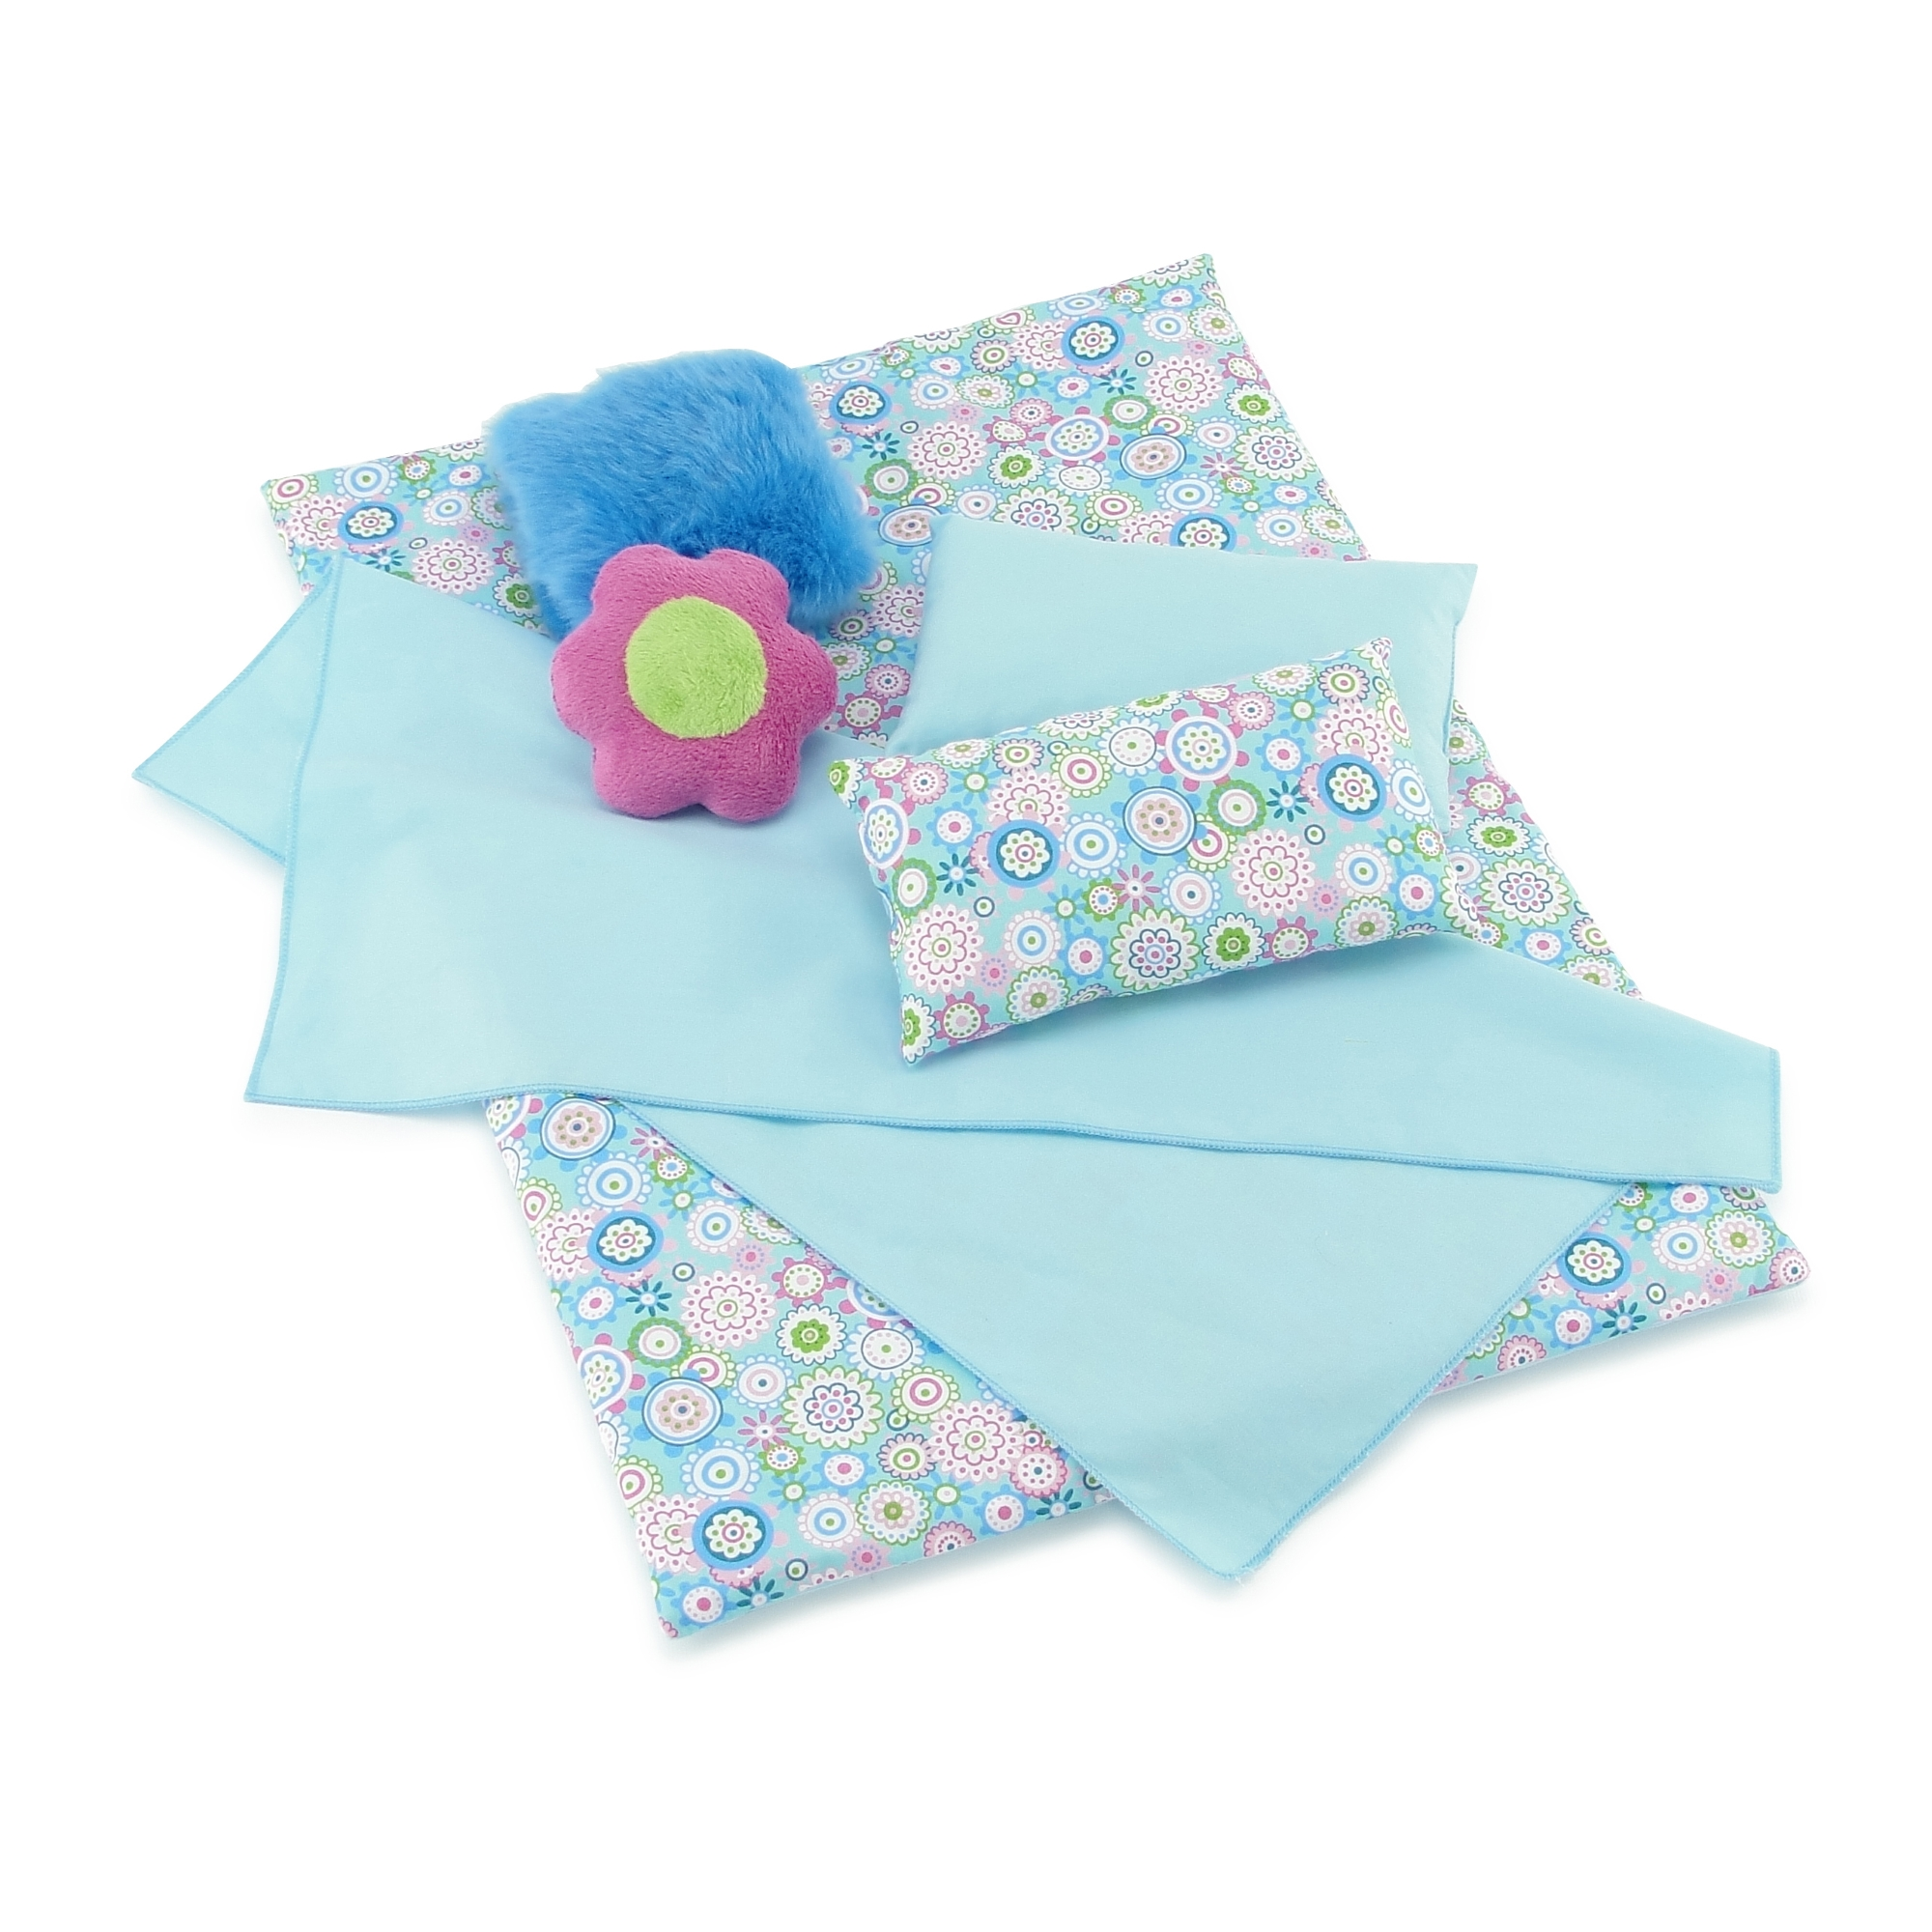 18 Inch Doll Bedding 2 Pc Set Reversible Print Doll Bedding Accessories with Comforter and Pillow Fits American Girl Dolls and Other 18 Inch Dolls